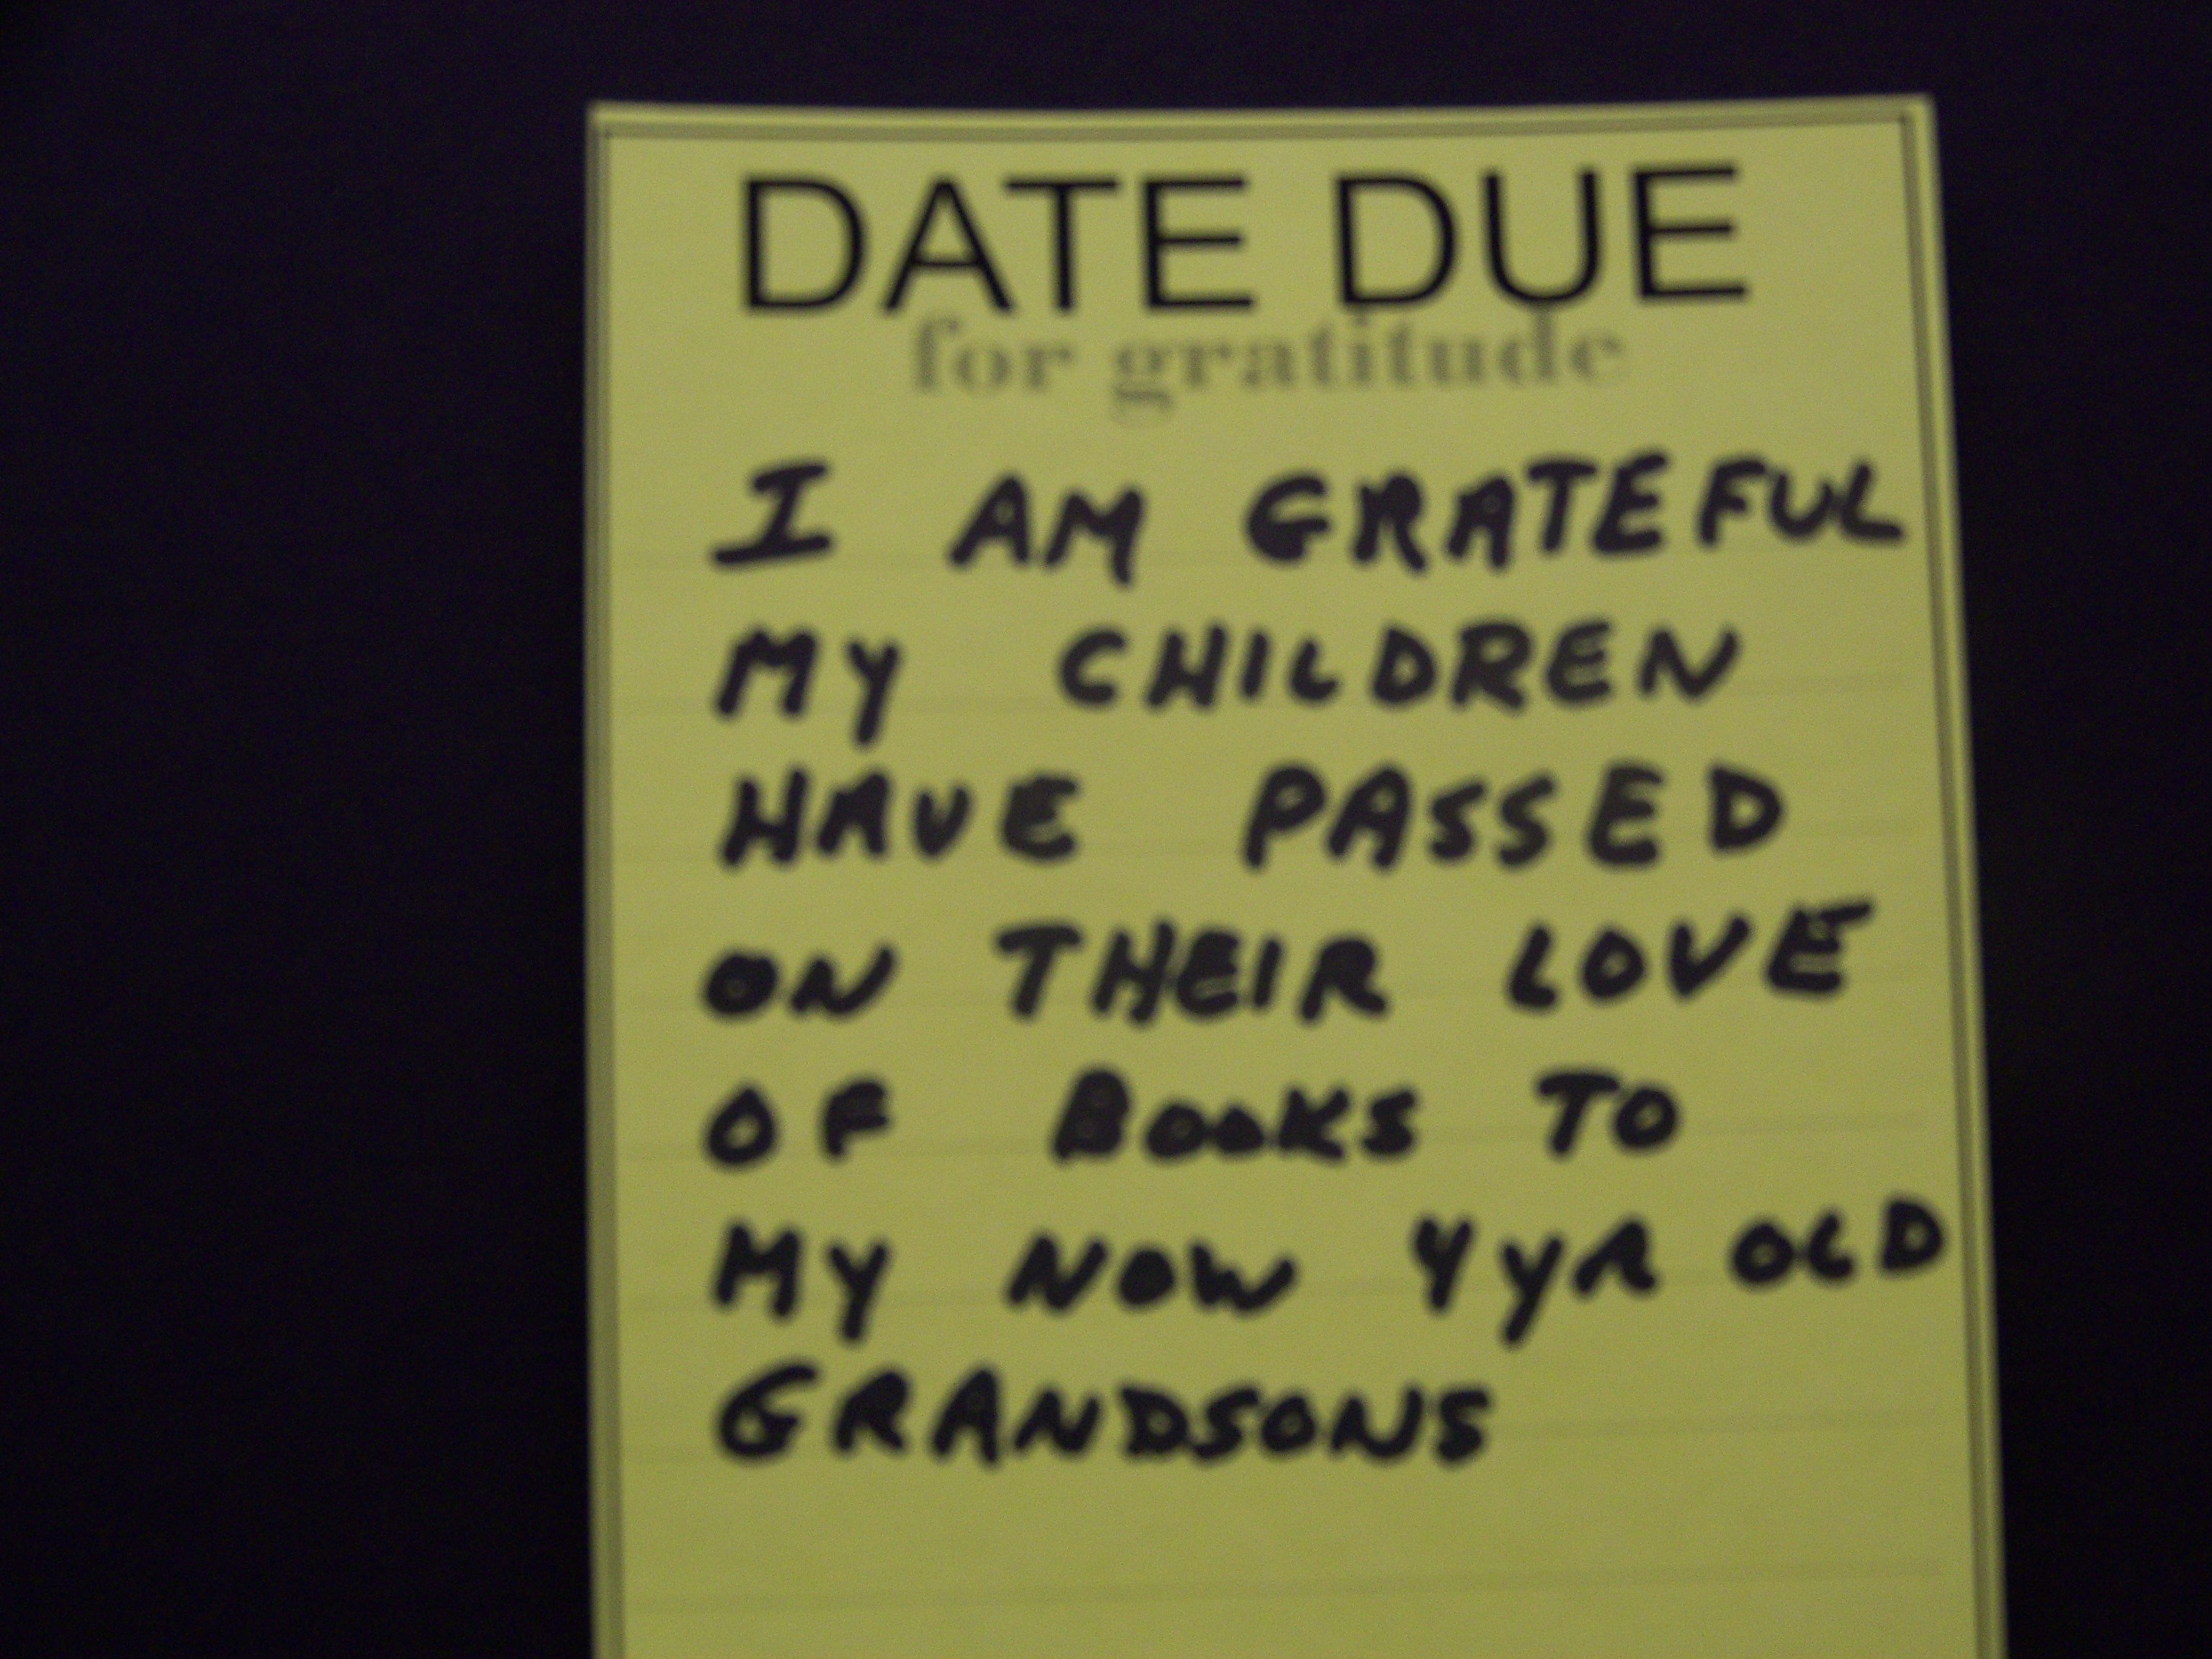 Gratitude Graffiti Project Spreads Across Maplewood and Beyond